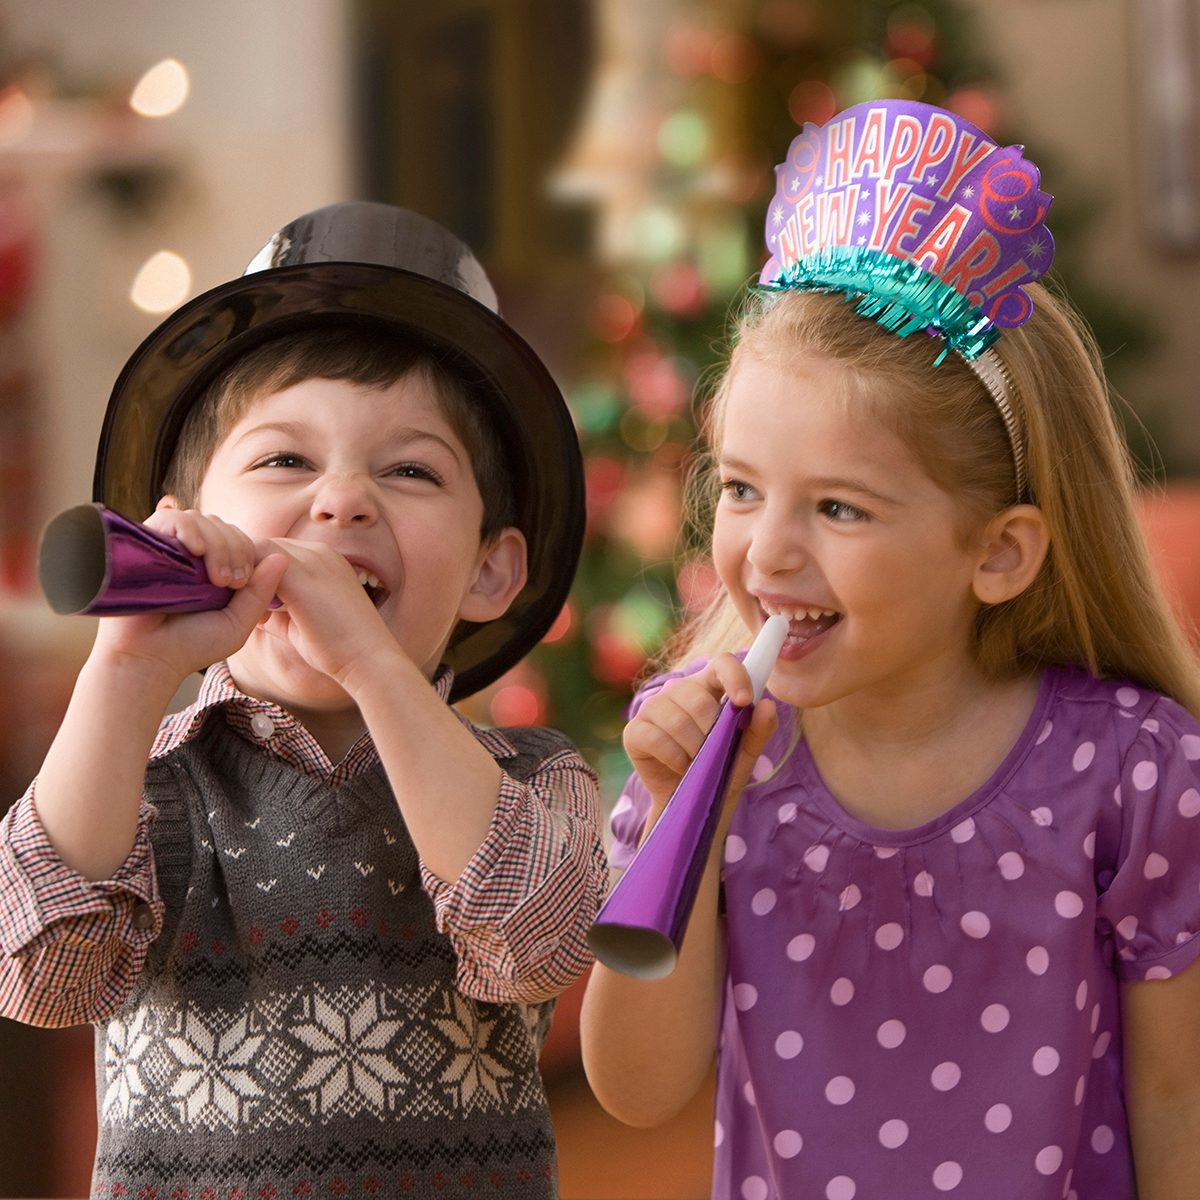 Boy and girl celebrating New Year's Eve